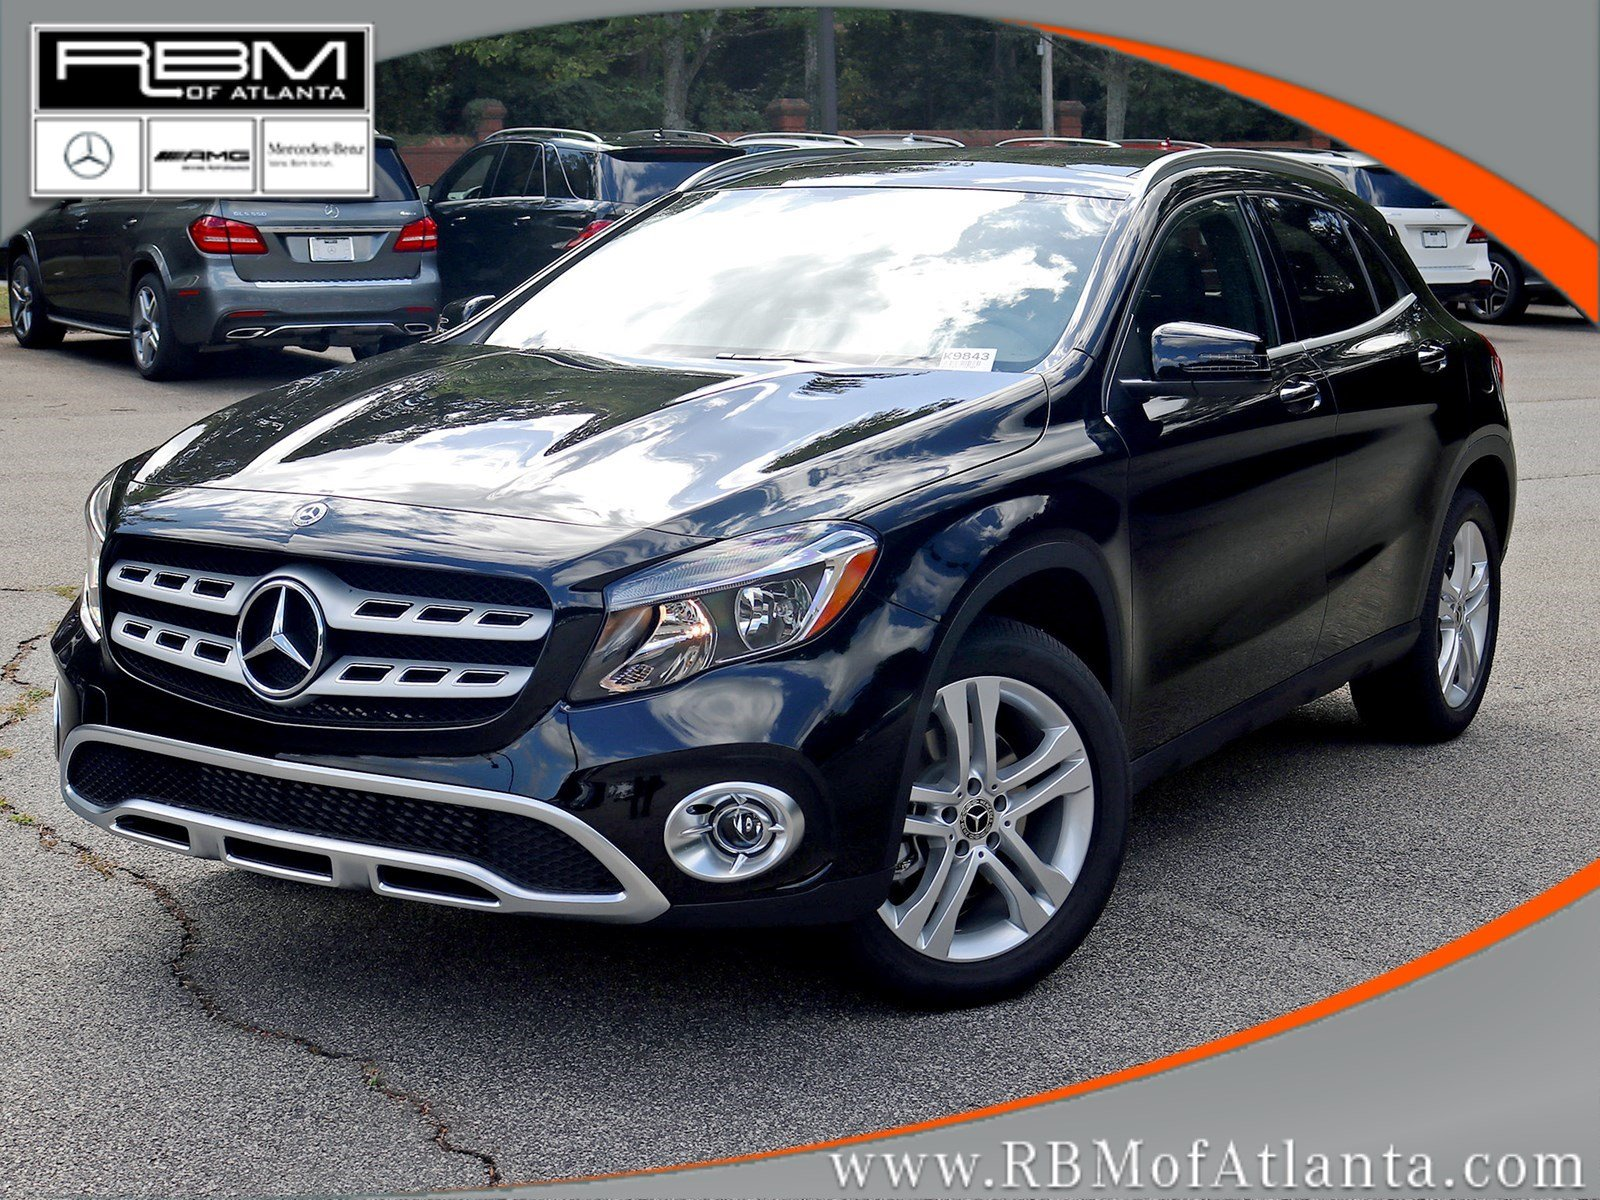 new 2018 mercedes benz gla gla 250 suv in atlanta k9843 rbm of atlanta. Black Bedroom Furniture Sets. Home Design Ideas